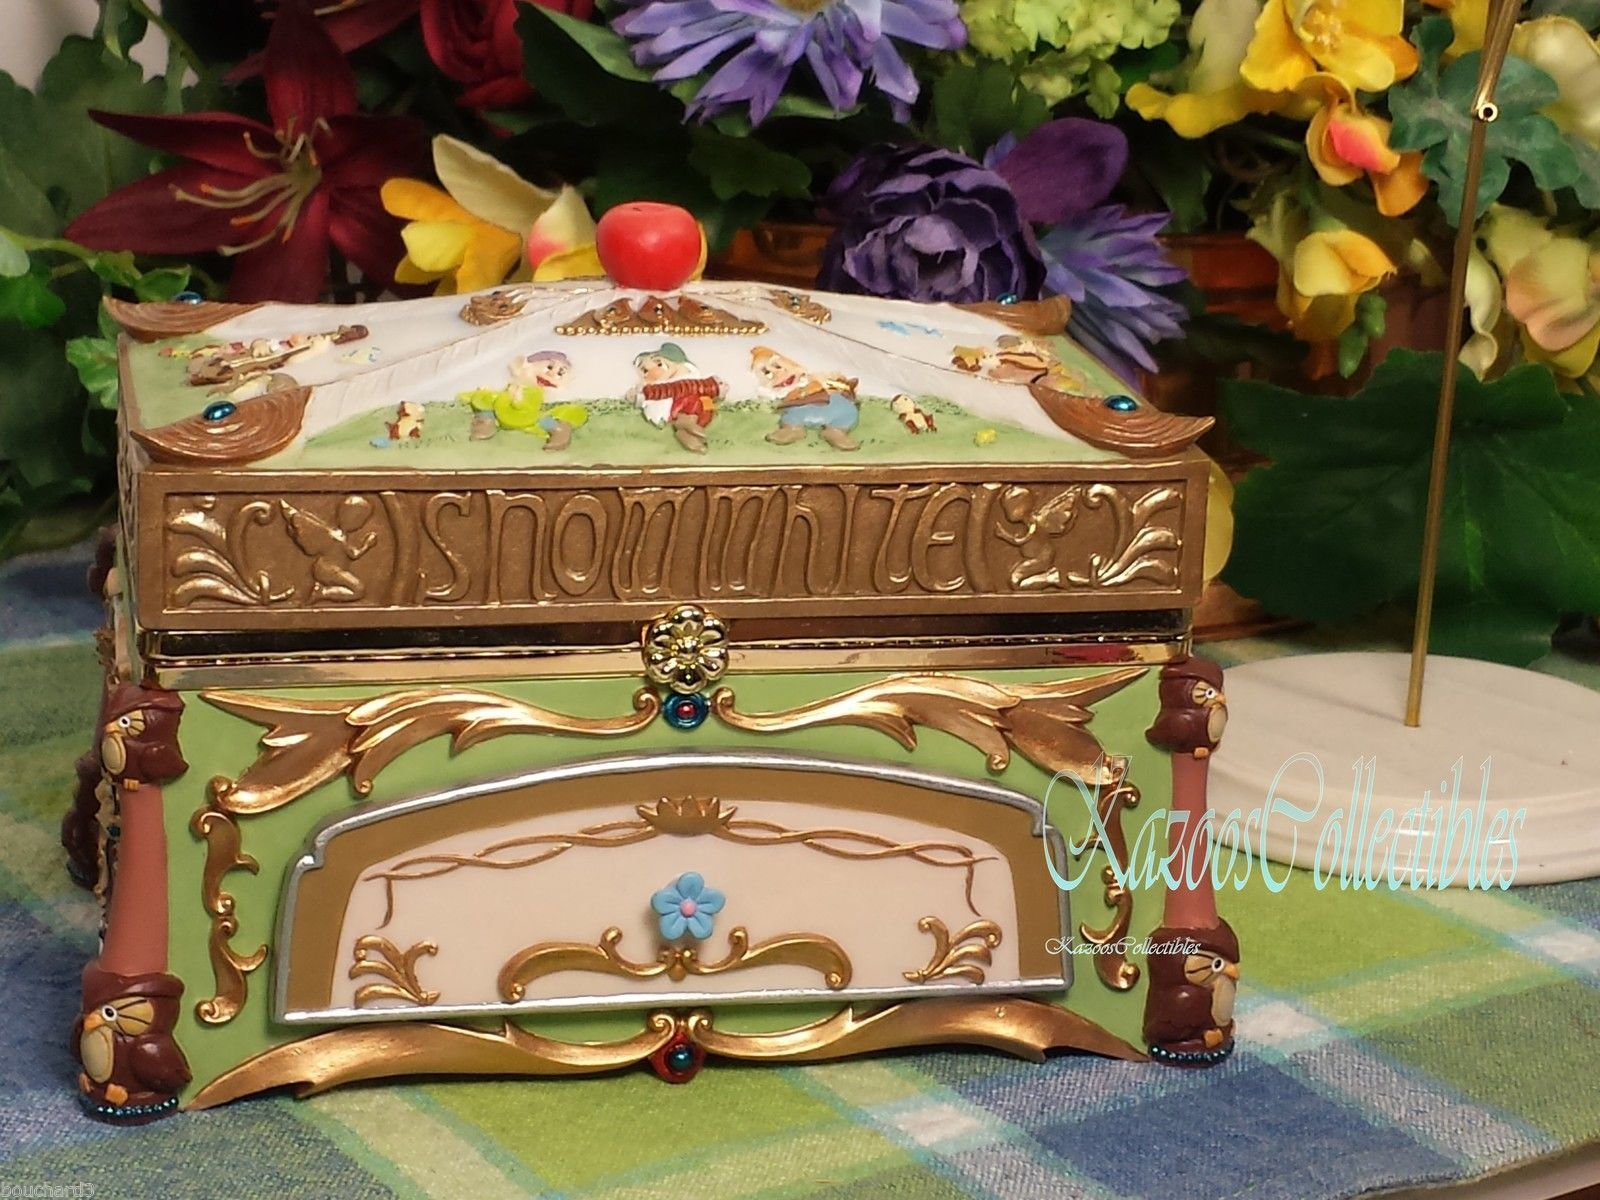 Snow White Jewelry Box CollectiblesLE Wishlist Pinterest